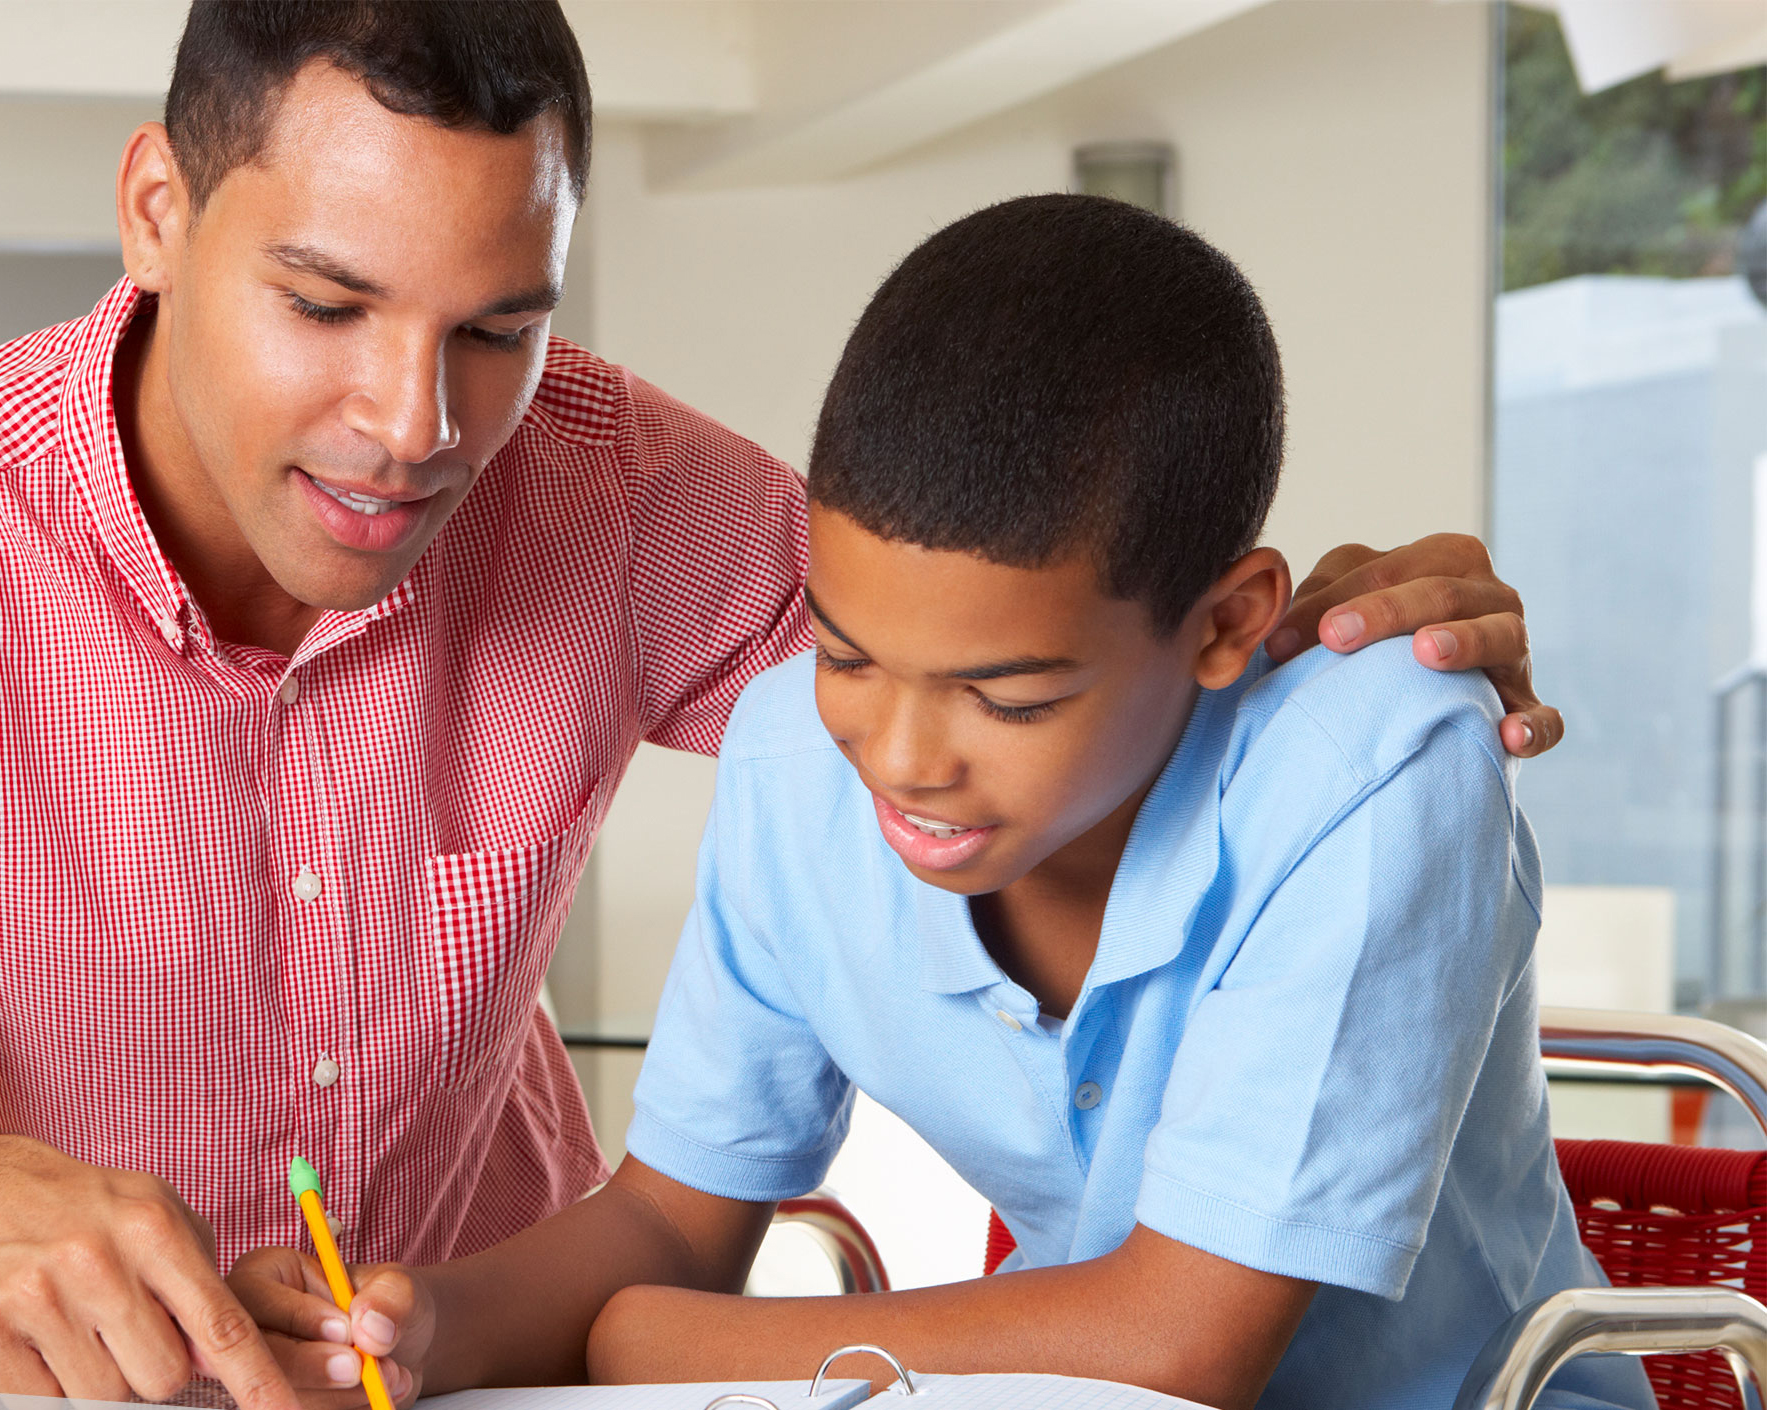 Transition Fair thumb image. Father helping son with school work.